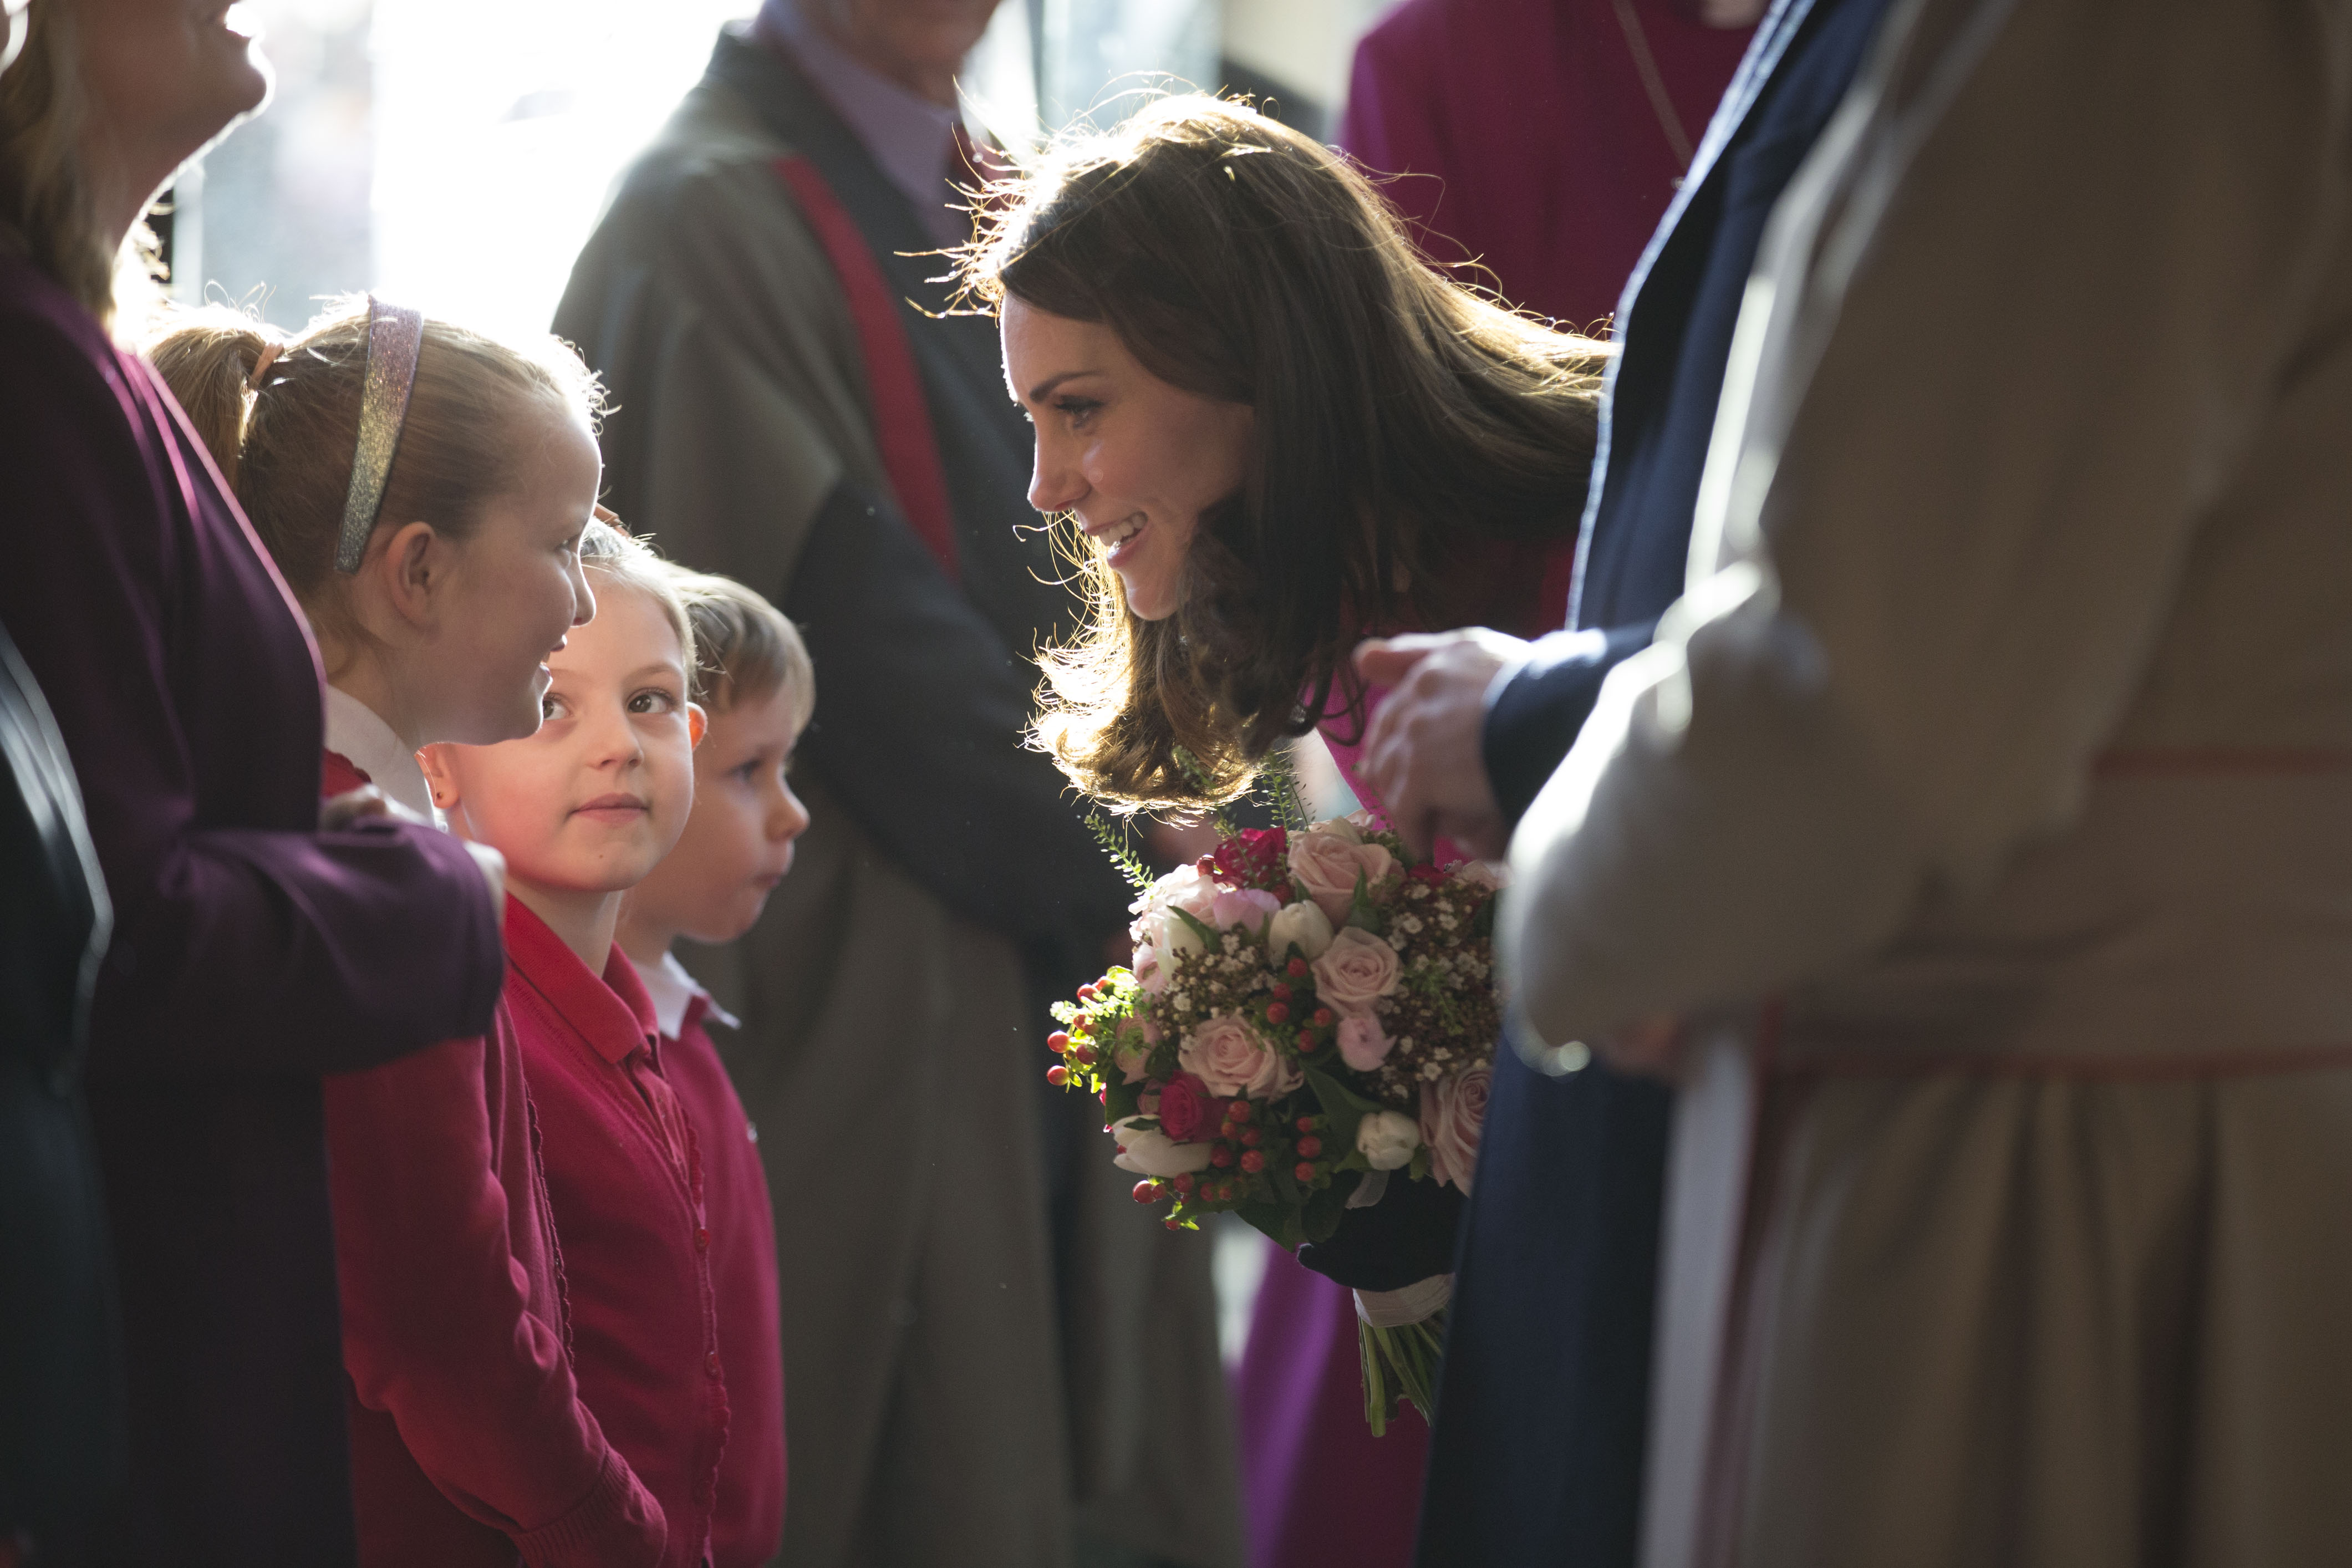 Catherine, Duchess of Cambridge receives flowers from Megan (aged 7), Isabella (aged 8) and Szymek (aged 7) from Coundon Primary School at Coventry Cathedral during her visit to the city on January 16, 2018 in Coventry, England.